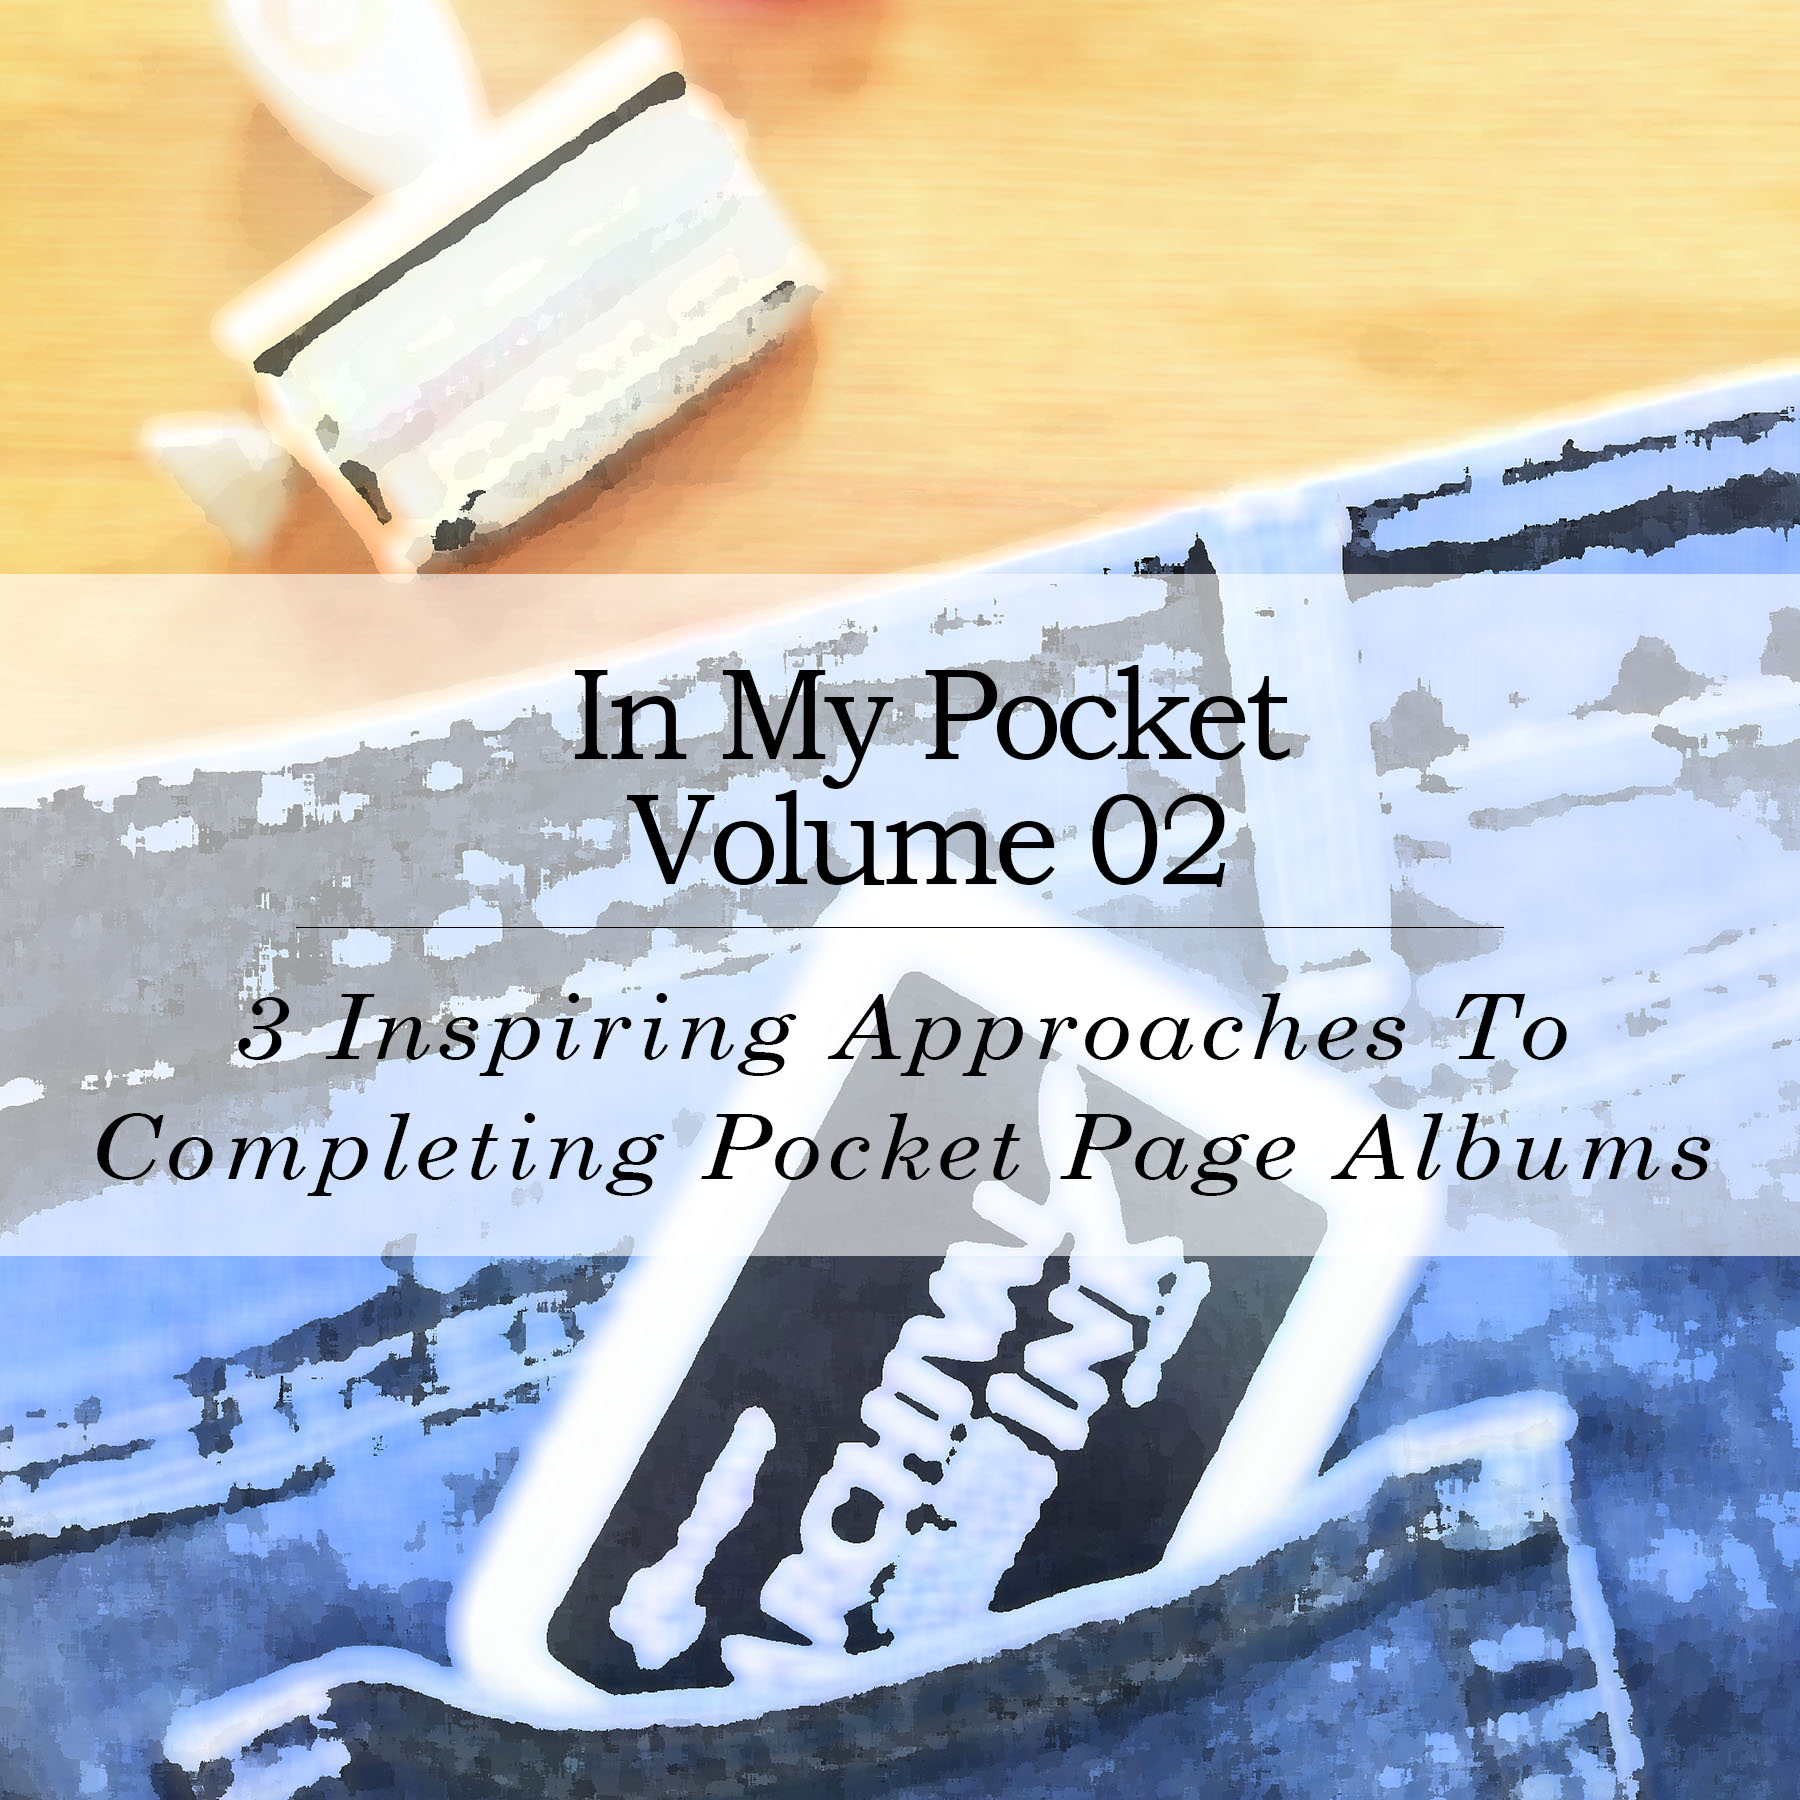 larkindesign in my pocket volume 02